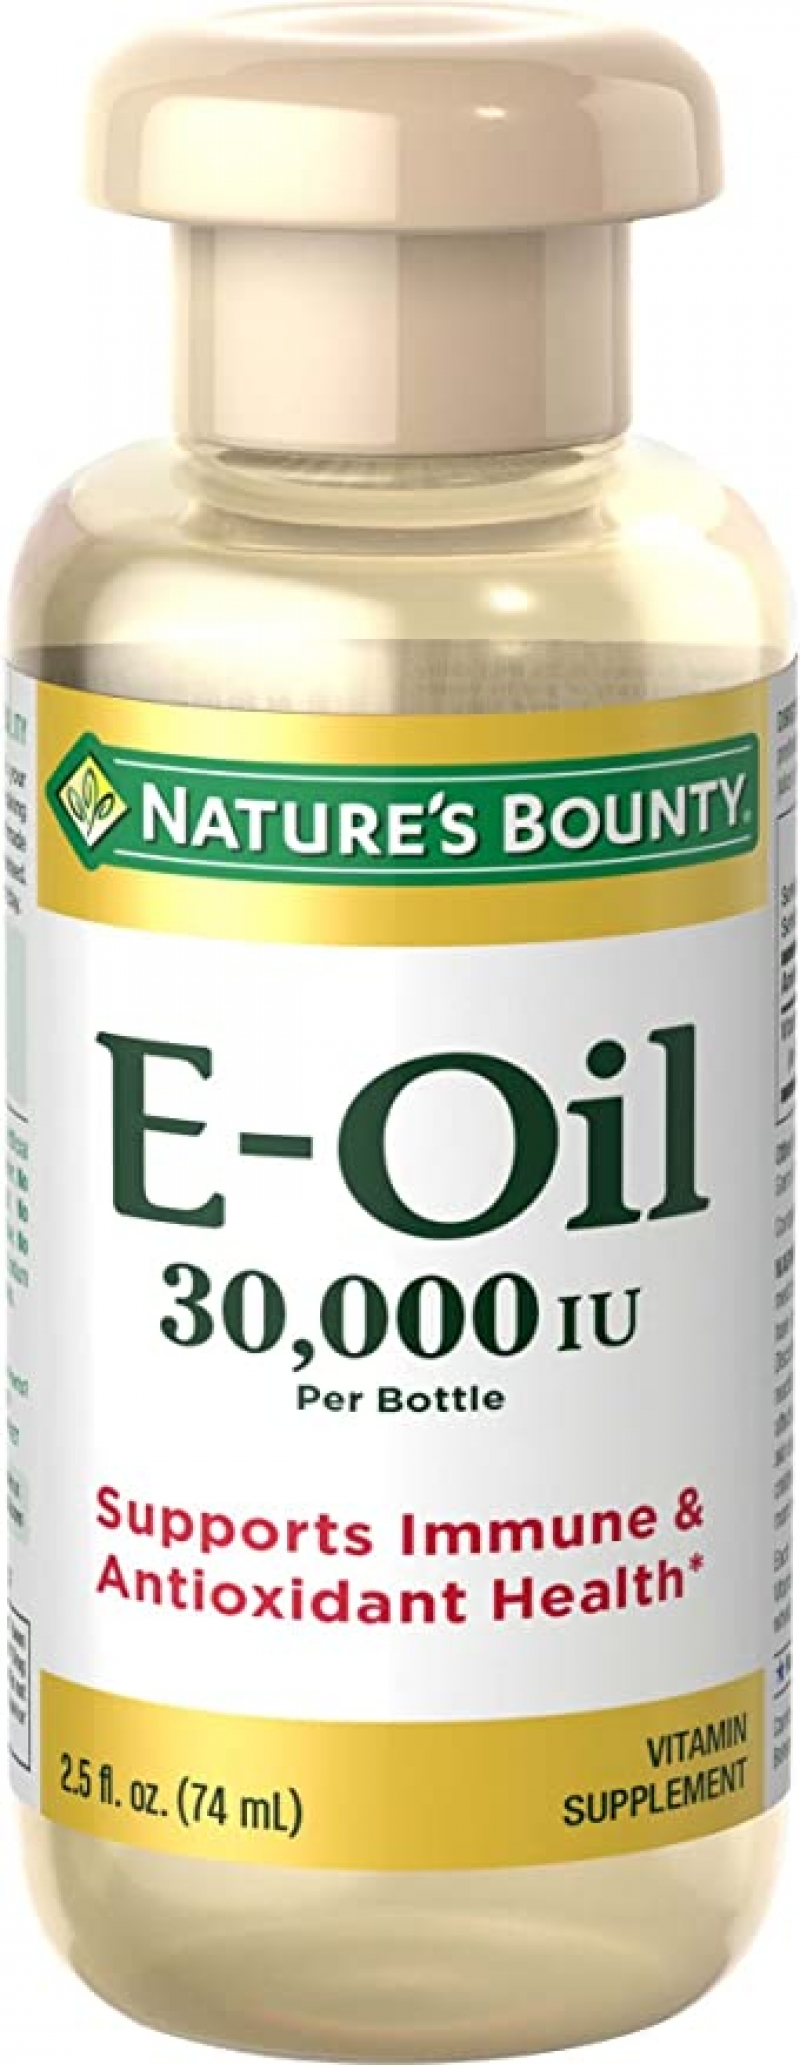 ihocon: Nature's Bounty Vitamin E Oil, 30,000IU Vitamin E, Topical or Oral oil, 2.5 Oz (外用或口服均可)